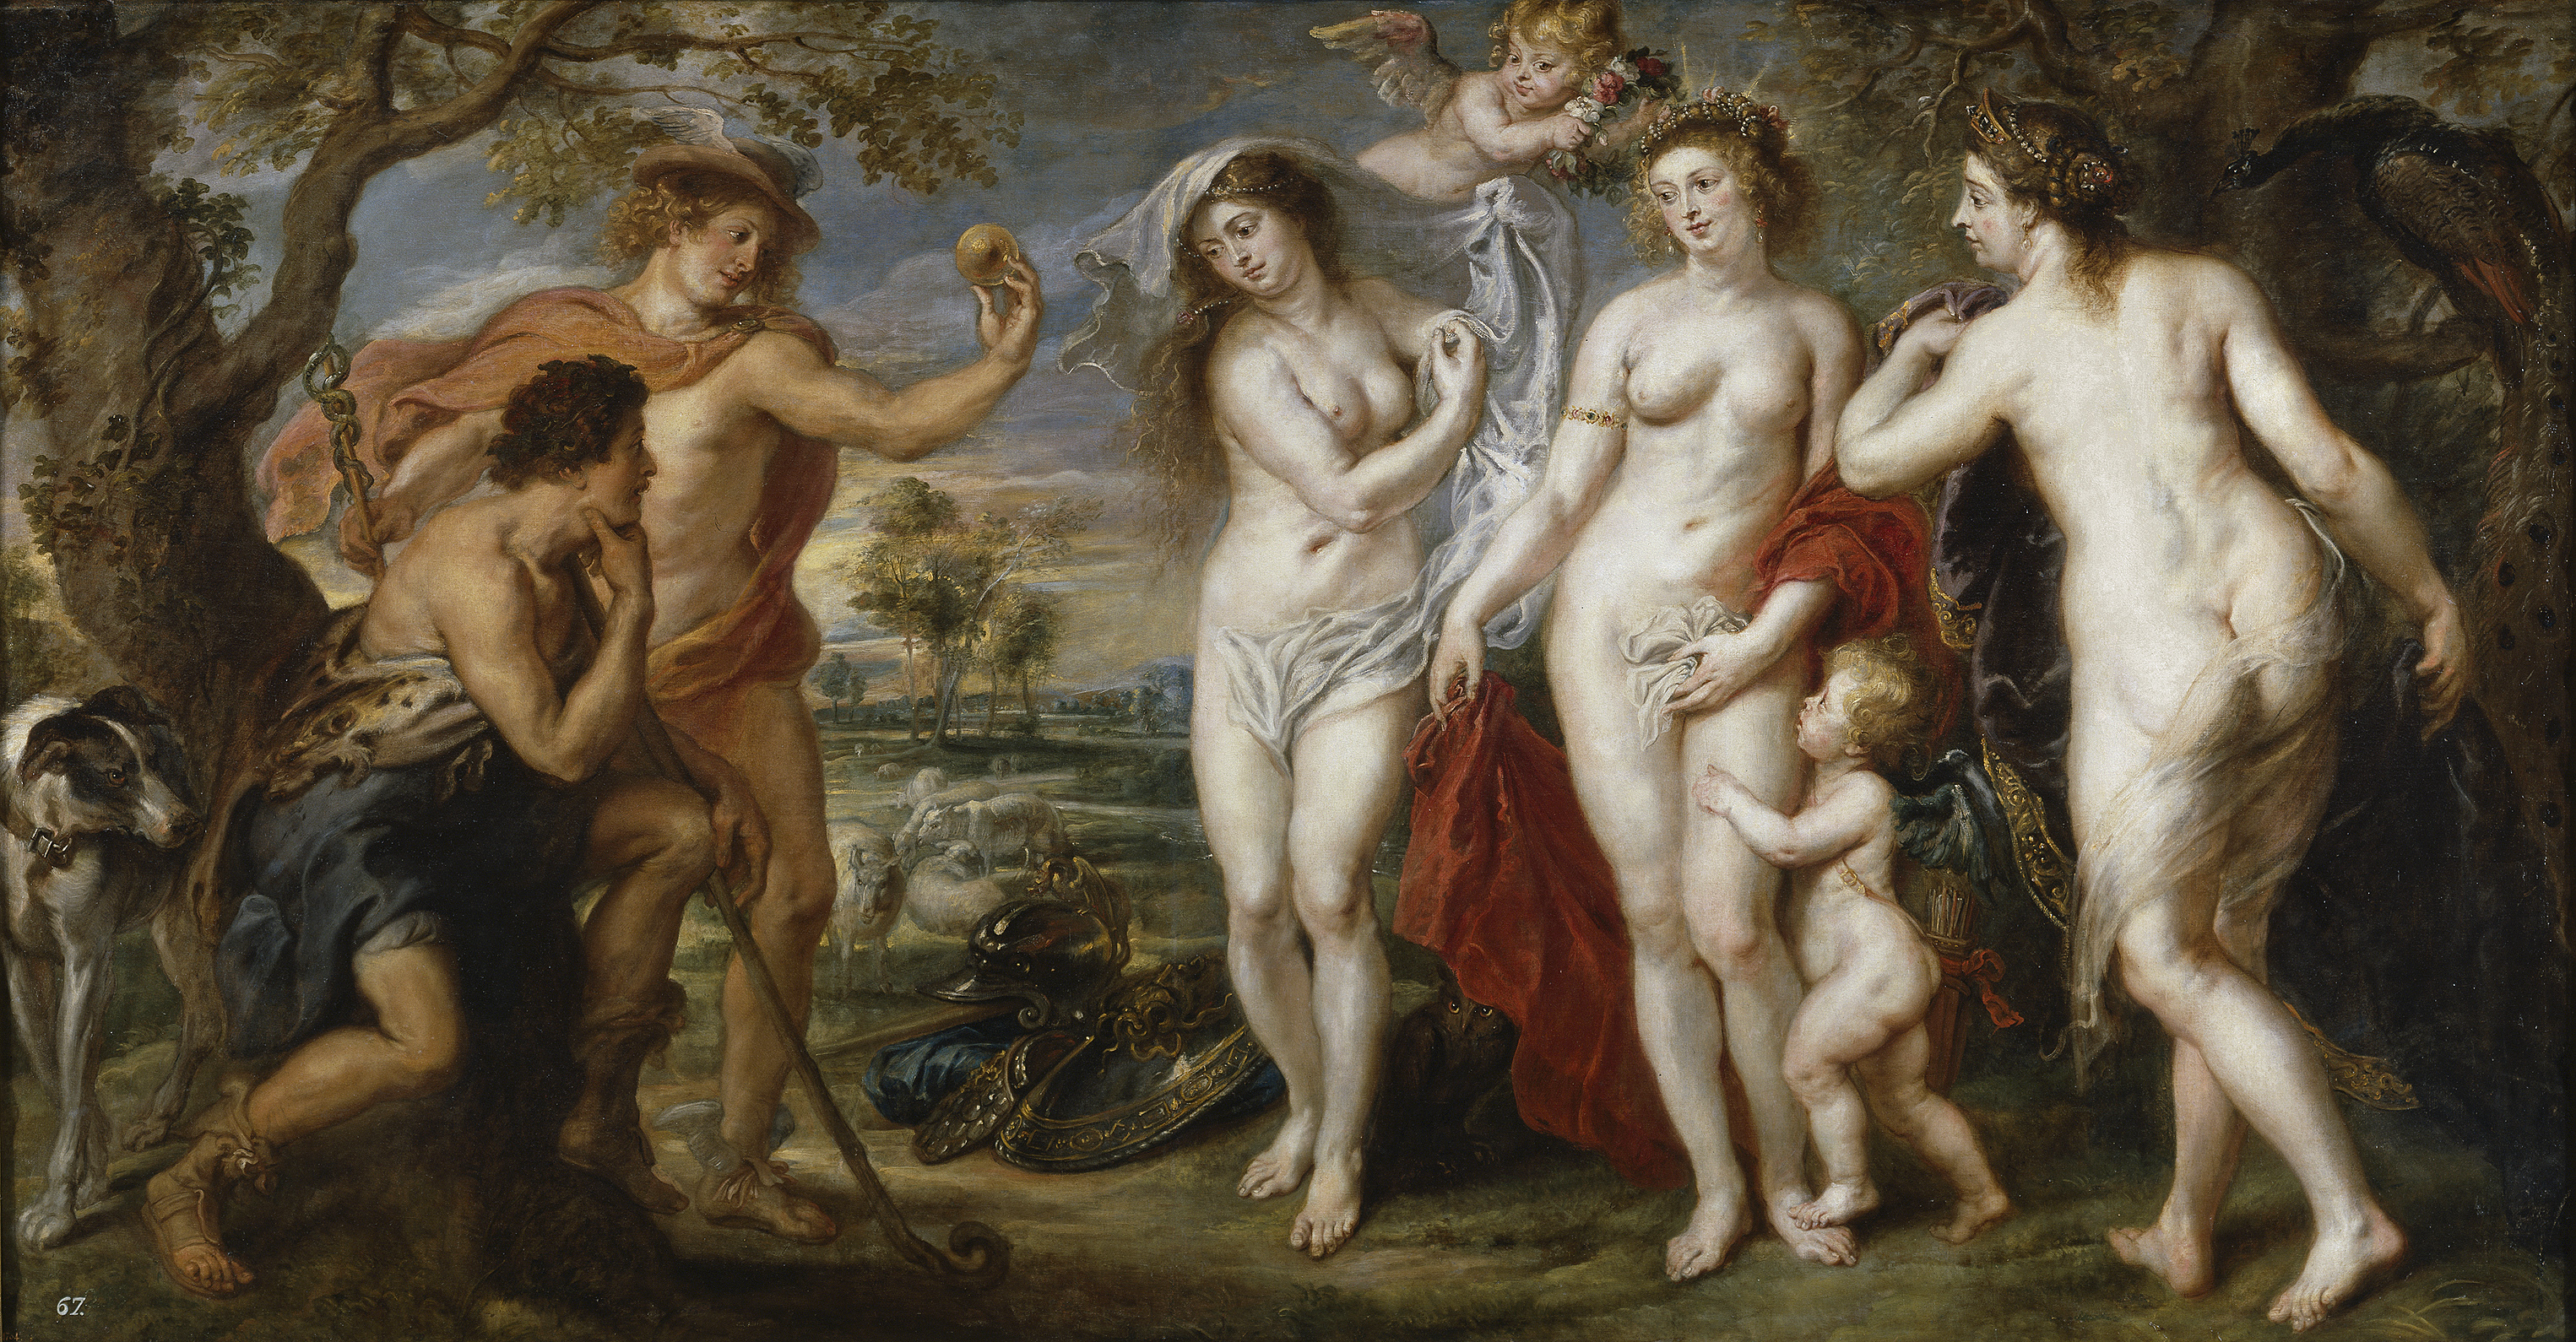 Peter Paul Rubens, 1577-1640. Суд Париса. 1638-1639. 199 х 381 см. Мадрид, Прадо